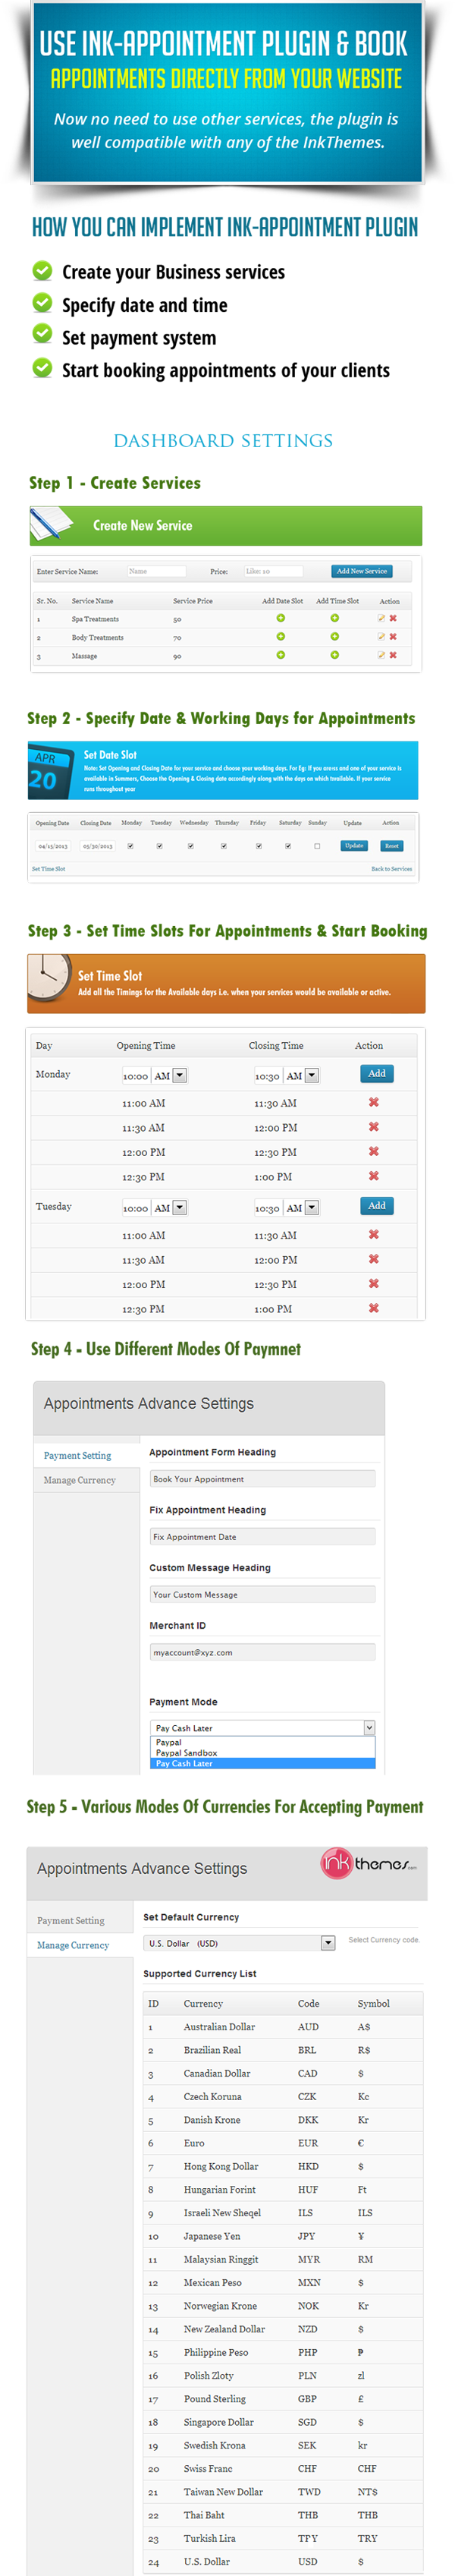 ink-appointment-booking screenshot 1